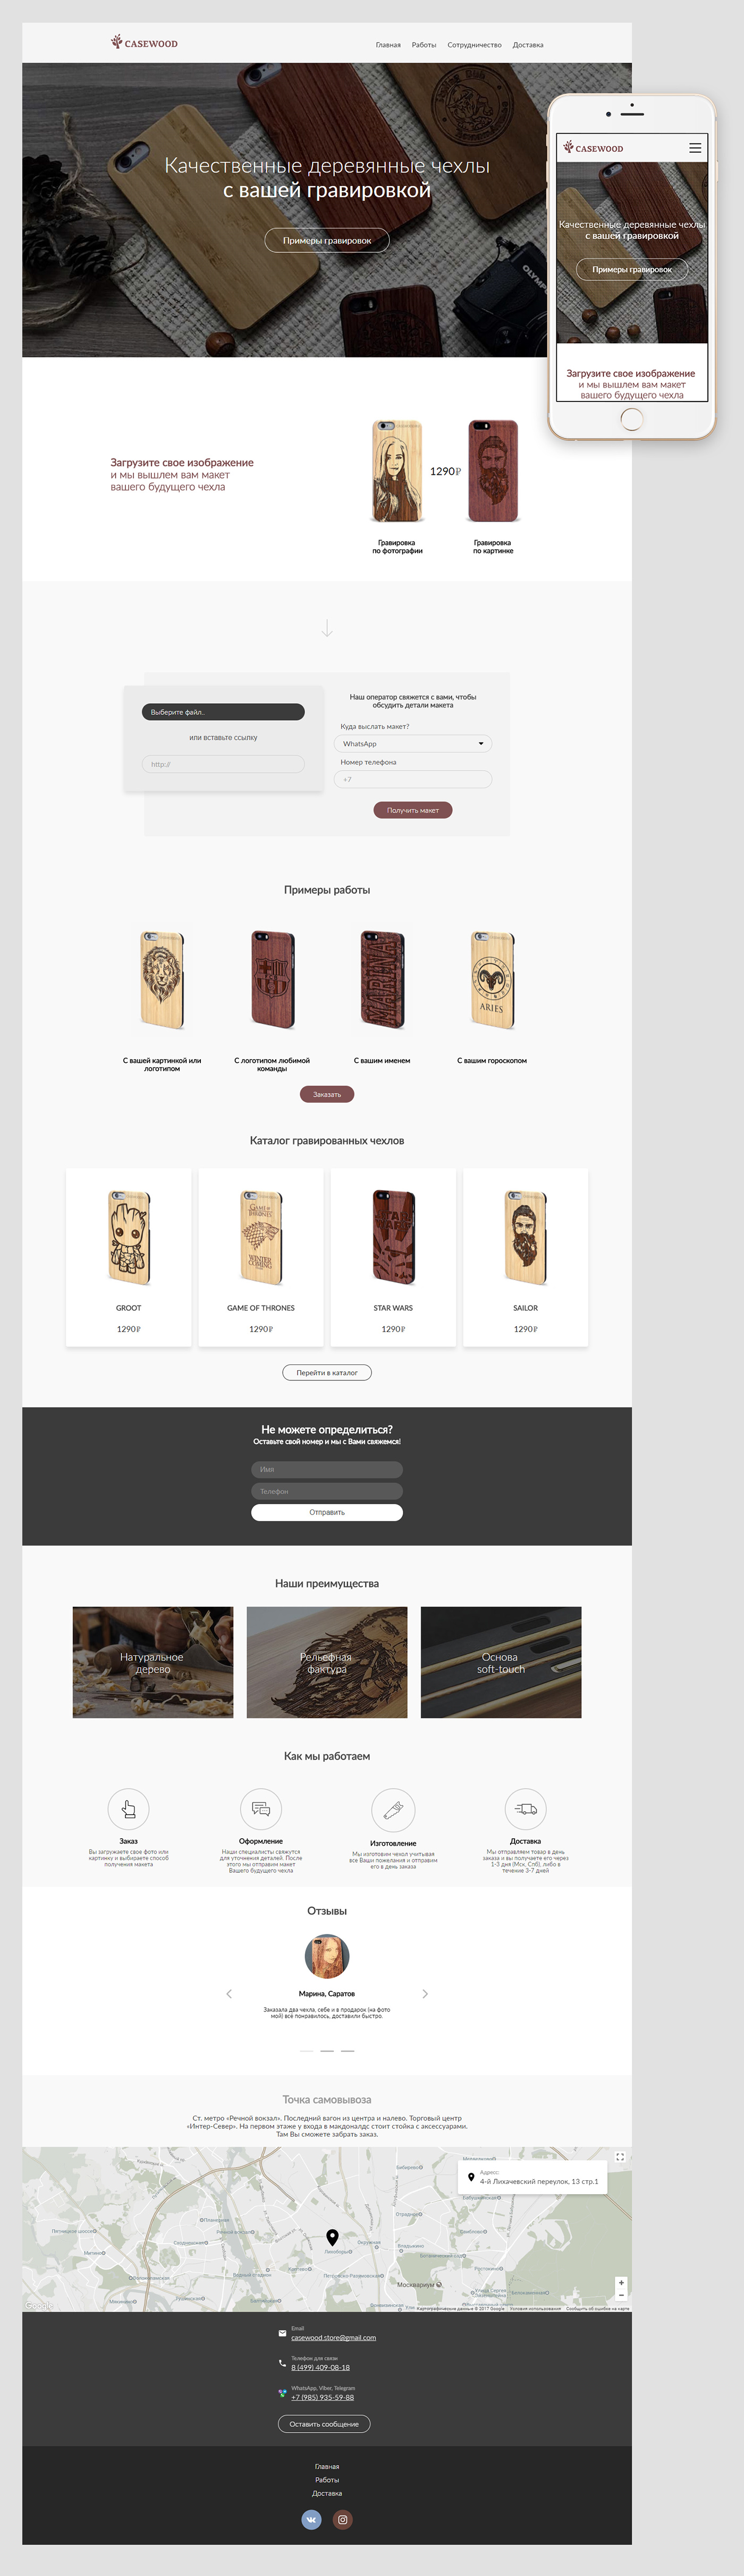 iphone case wooden wood natural phone mobile flat shadow gray